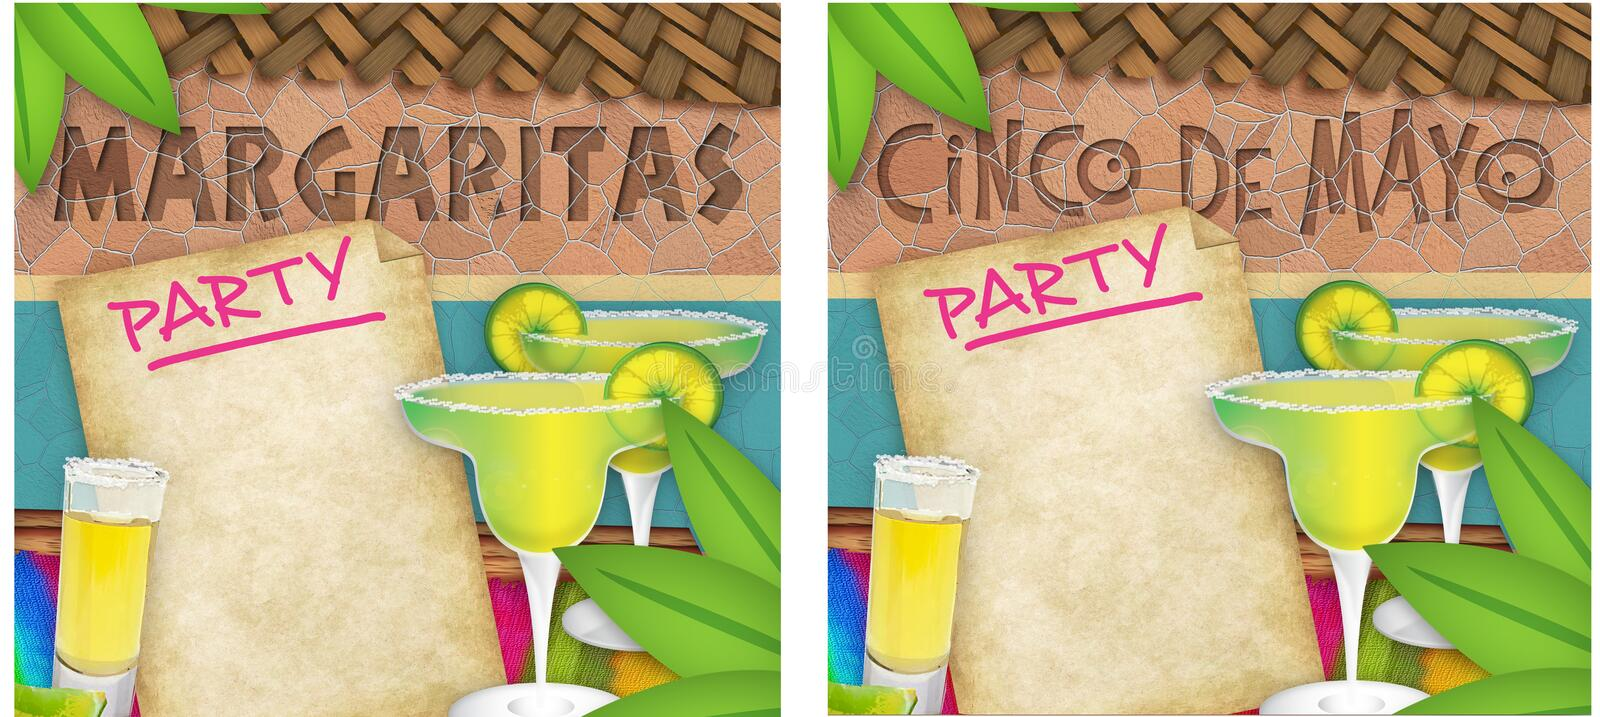 Cinco De Mayo Margarita Party vector illustration